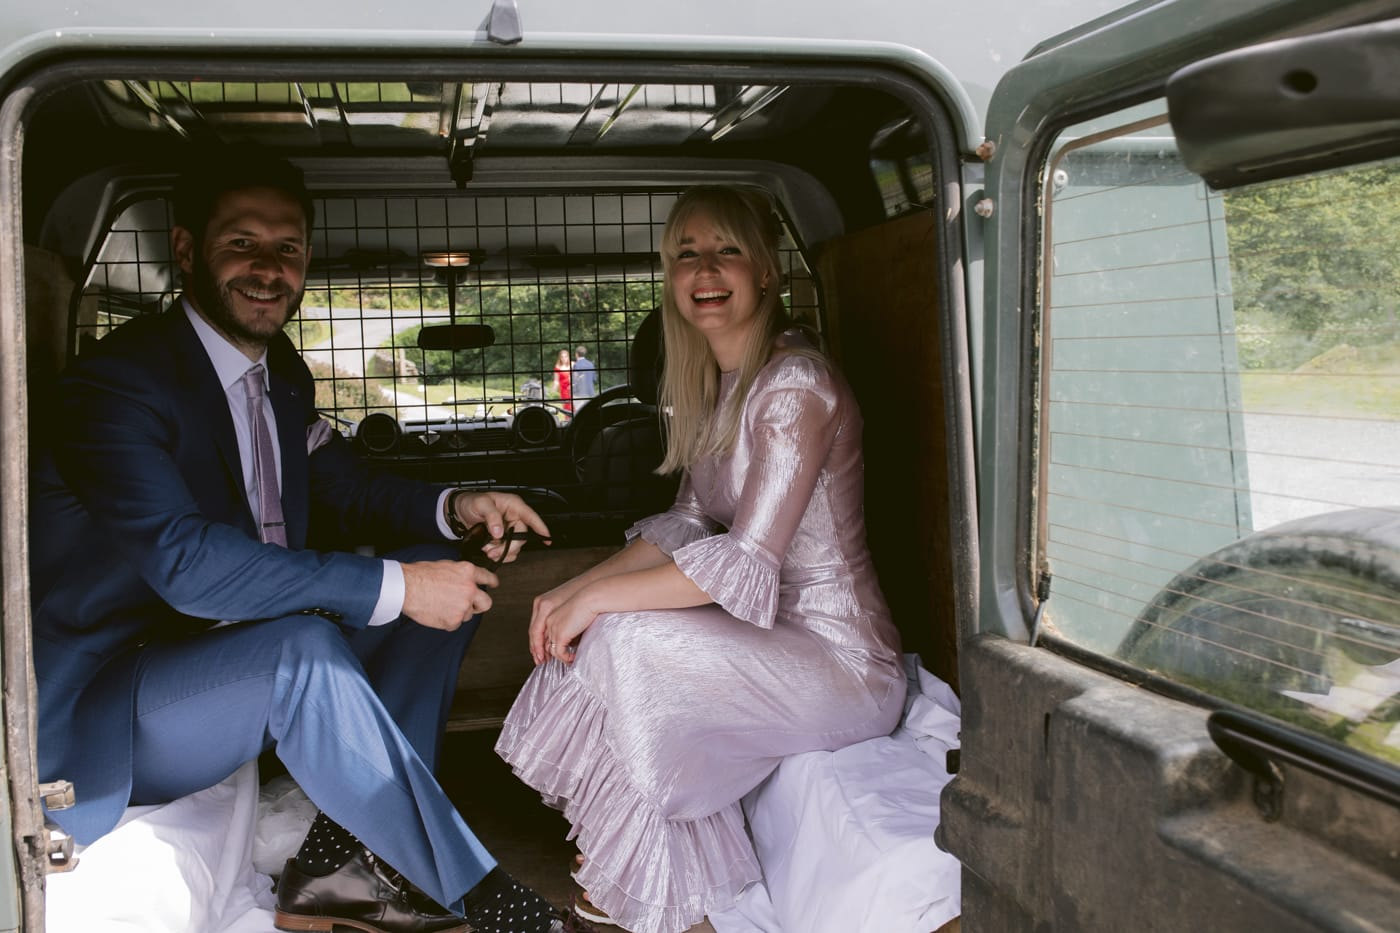 Bride and Groom Wedding Car Portrait Session at Yew Tree Farm Wedding